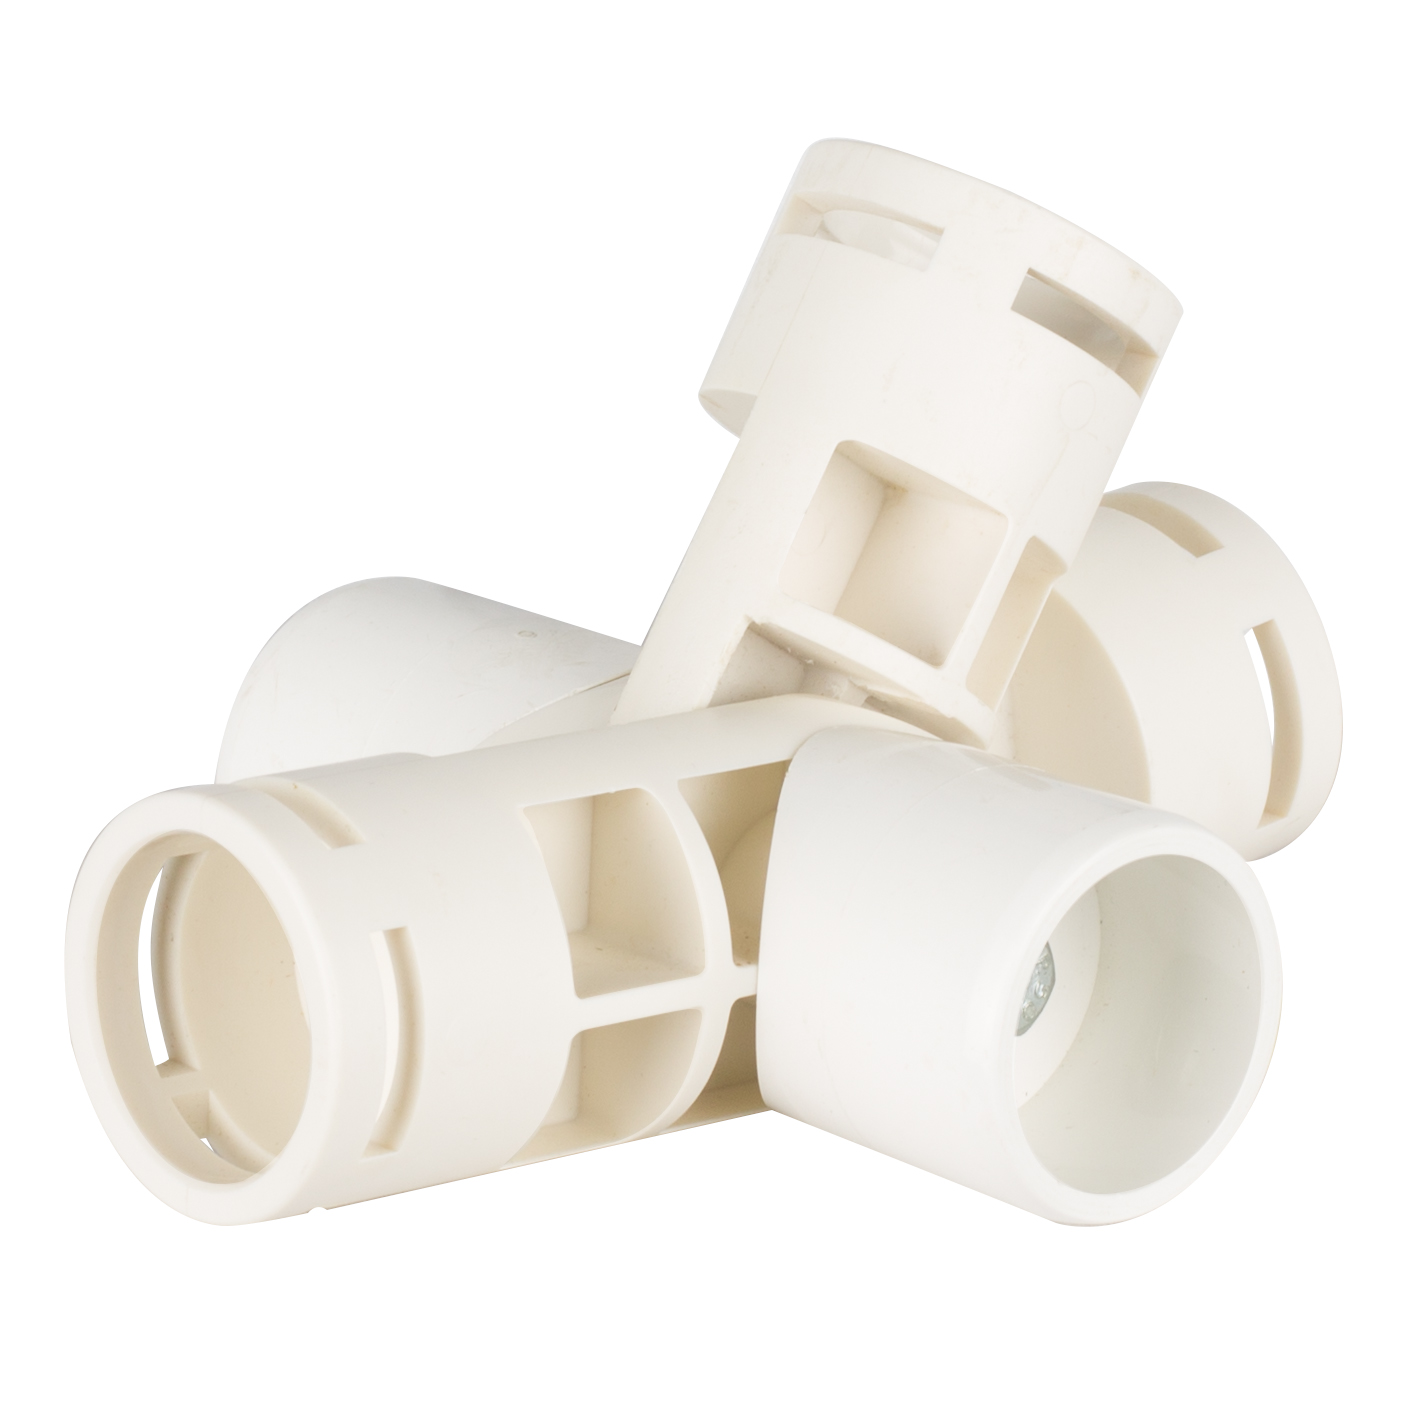 Adjustable 5-Way Joint Fittings for 1  PVC (243-5F)  sc 1 st  Creative Shelters & White PVC Fittings | Creative Shelters